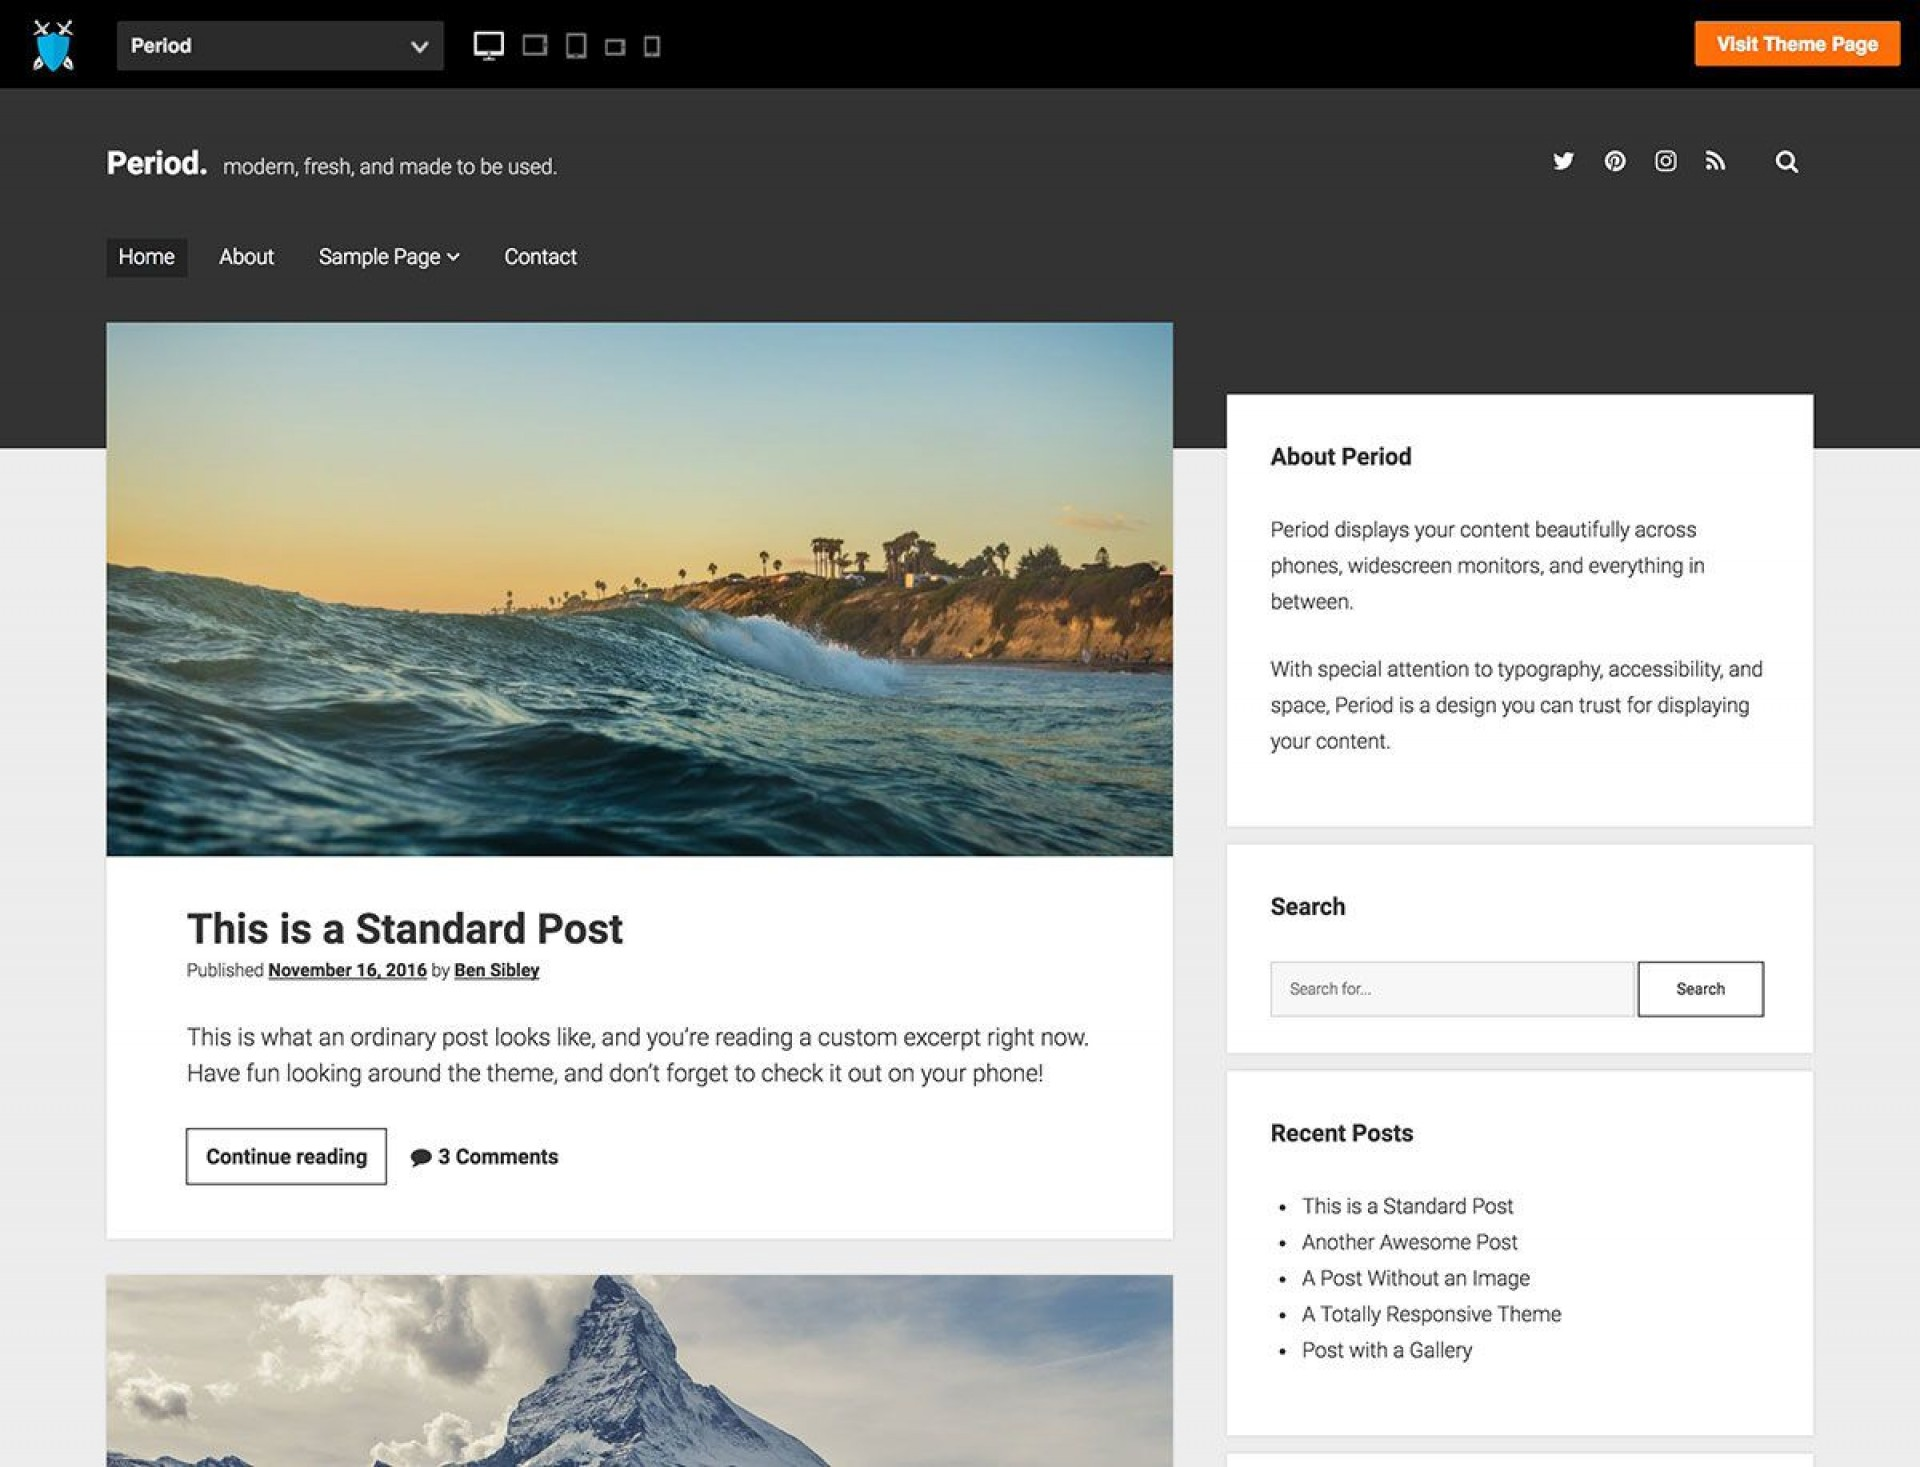 005 Awesome Free Blog Template Wordpres Highest Clarity  Wordpress Best Travel Theme Food 20201920